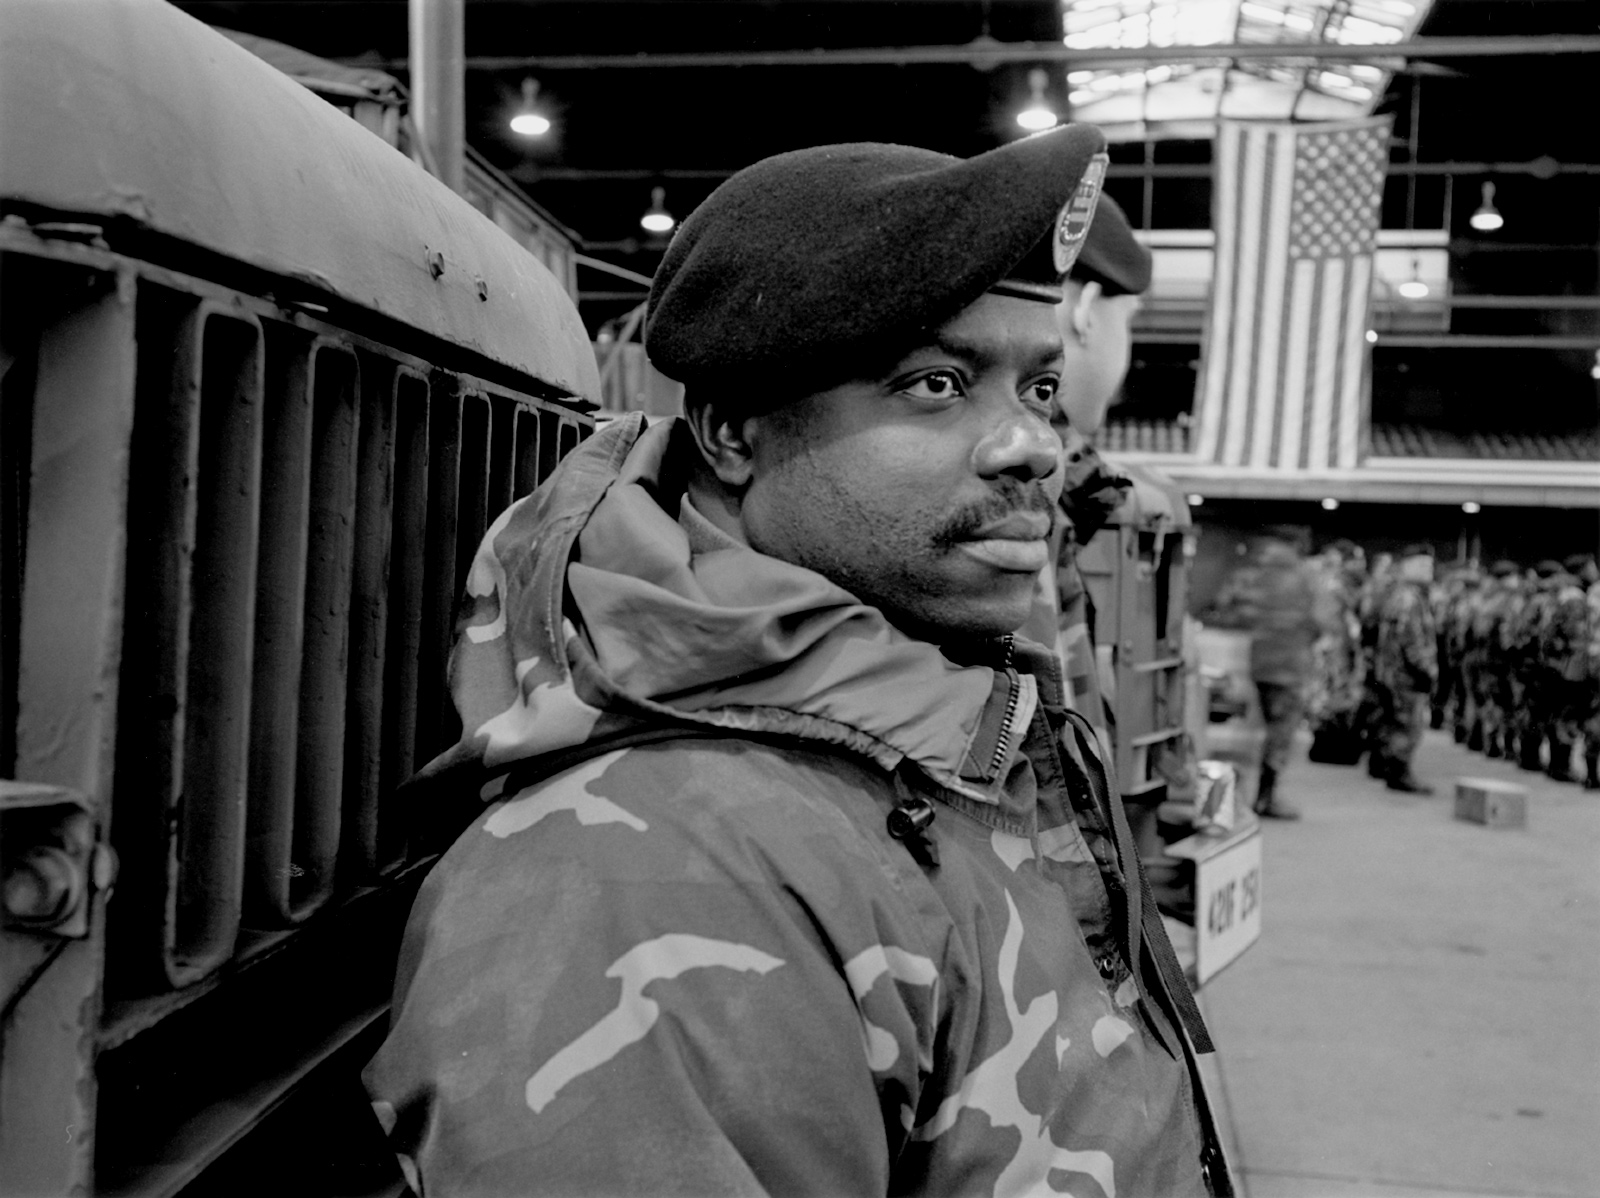 An Army National Guardsman at the armory in Jamaica, Queens, where he and other soldiers were gathered for deployment to Iraq, January 2004; photograph by Thomas Roma from his 2010 book Dear Knights and Dark Horses. It includes an introduction by Alec Wilkinson and is published by powerHouse.